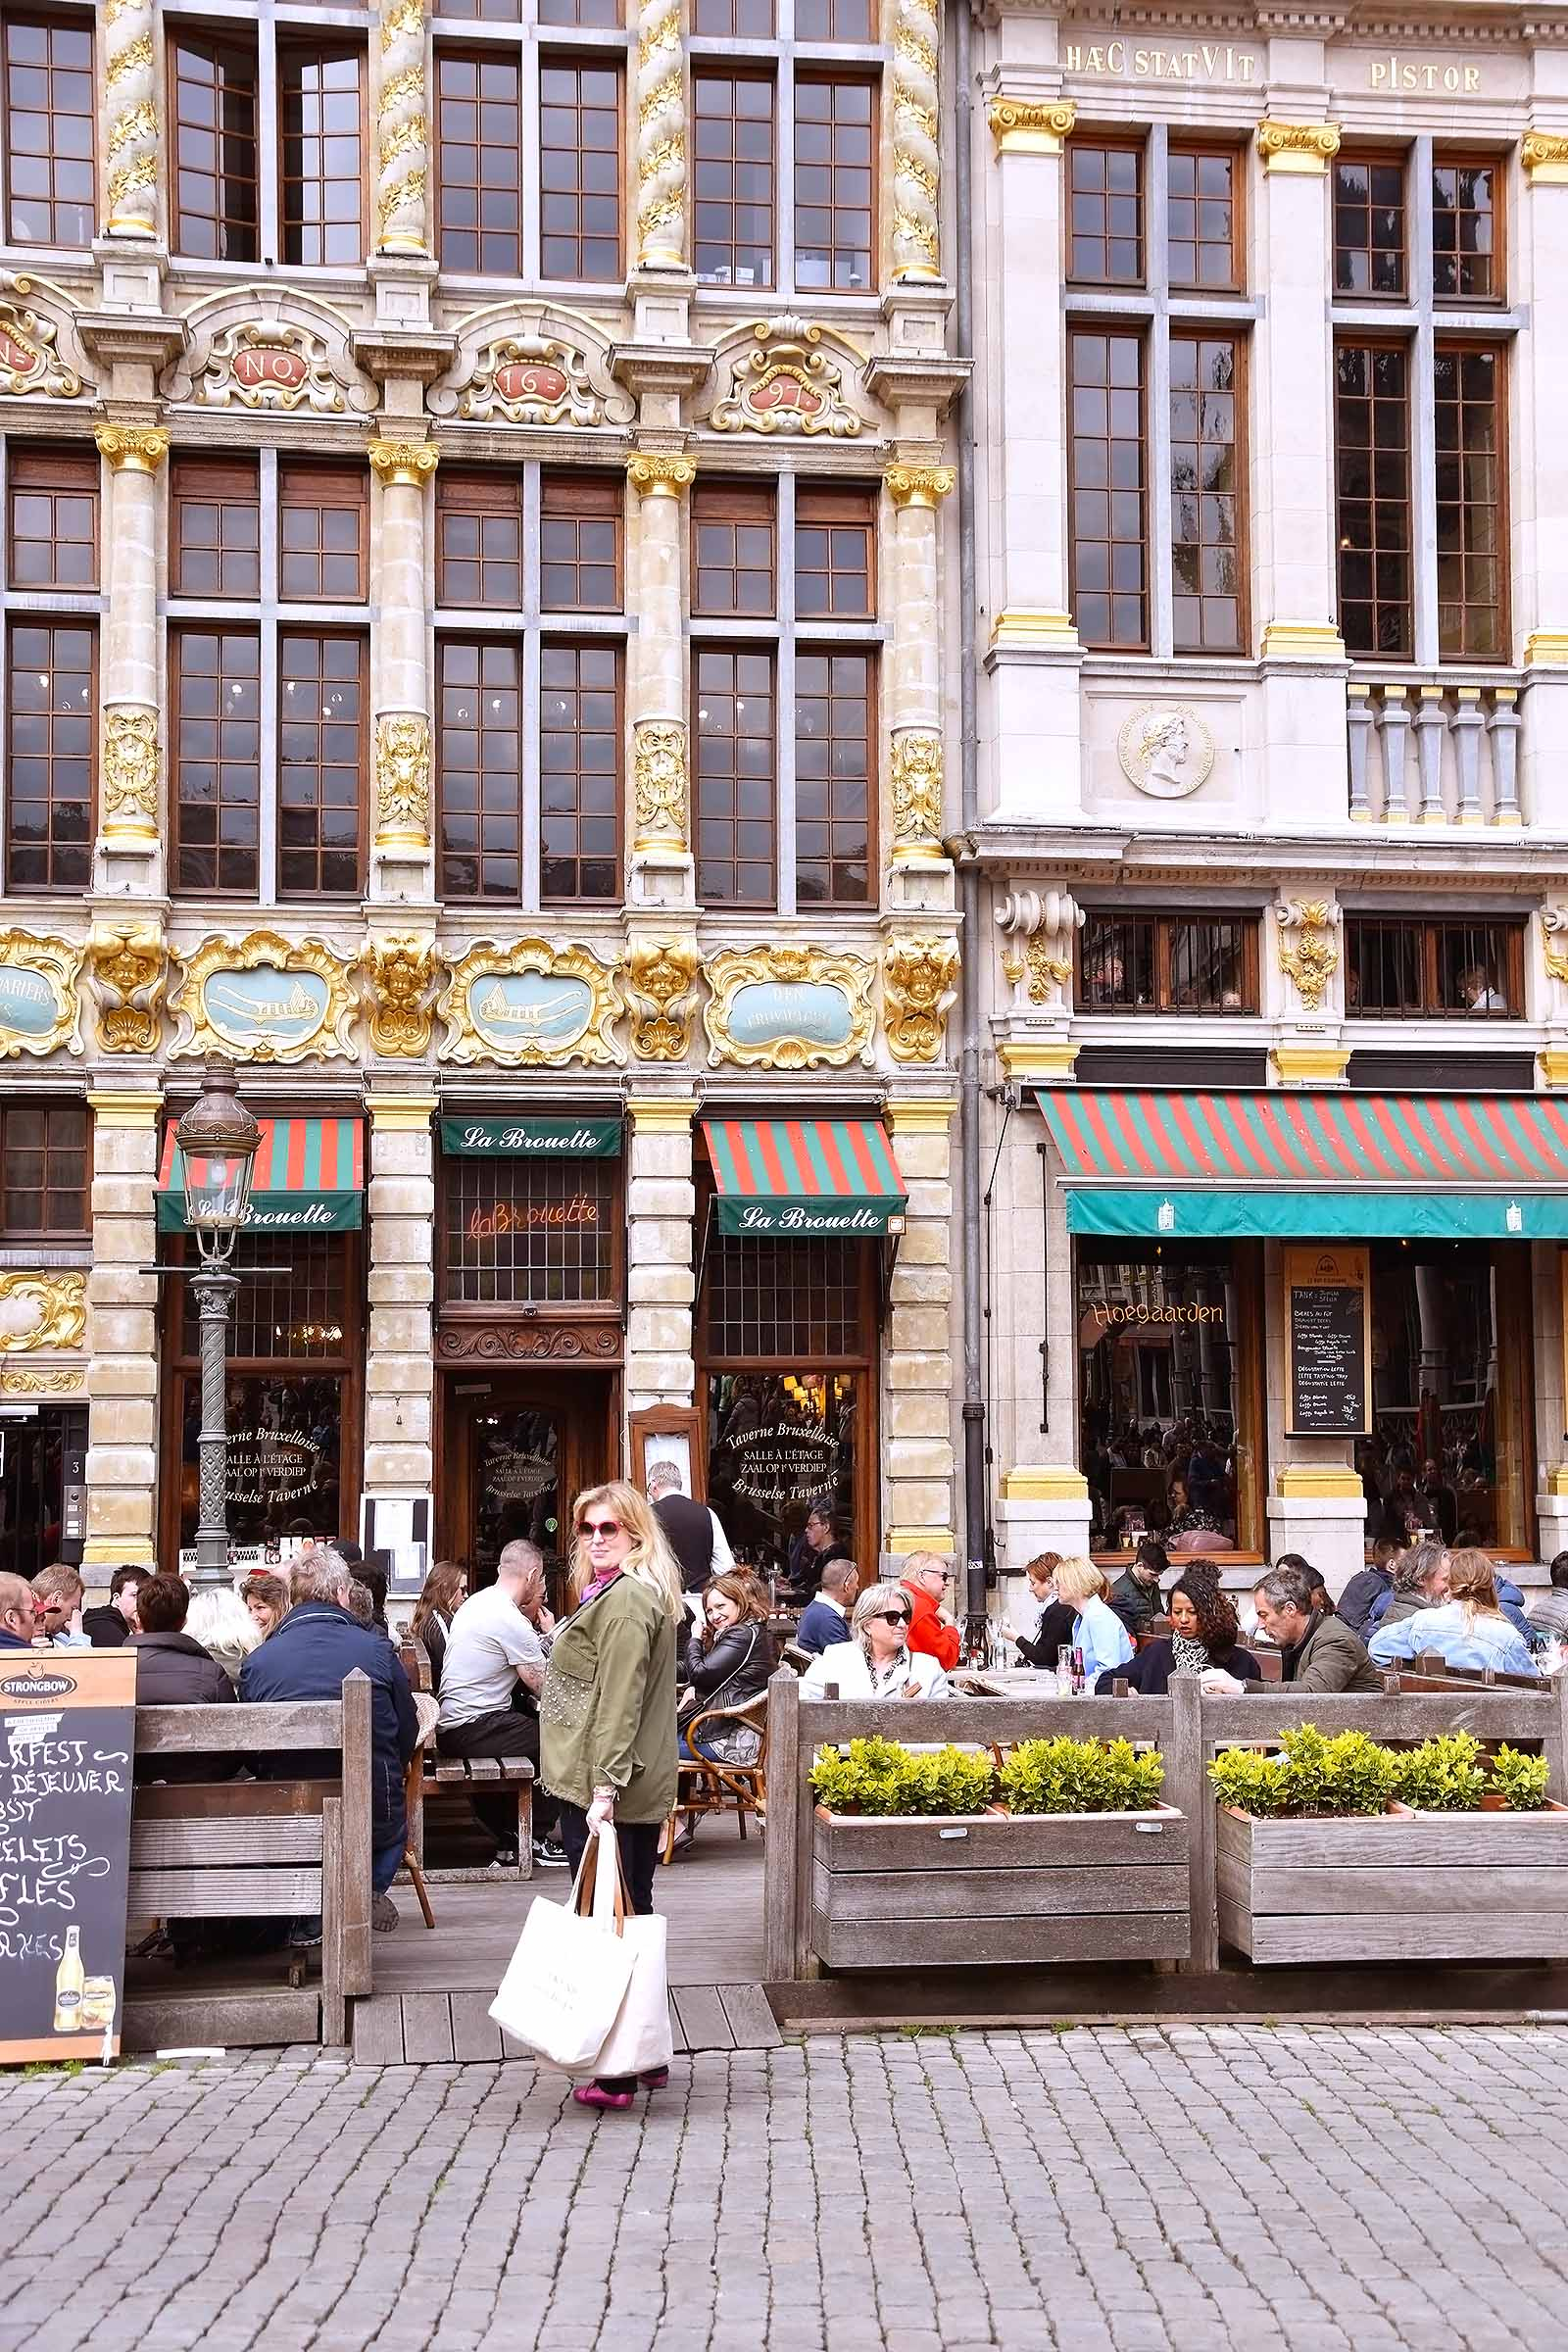 How to spend a sustainable weekend in Brussels